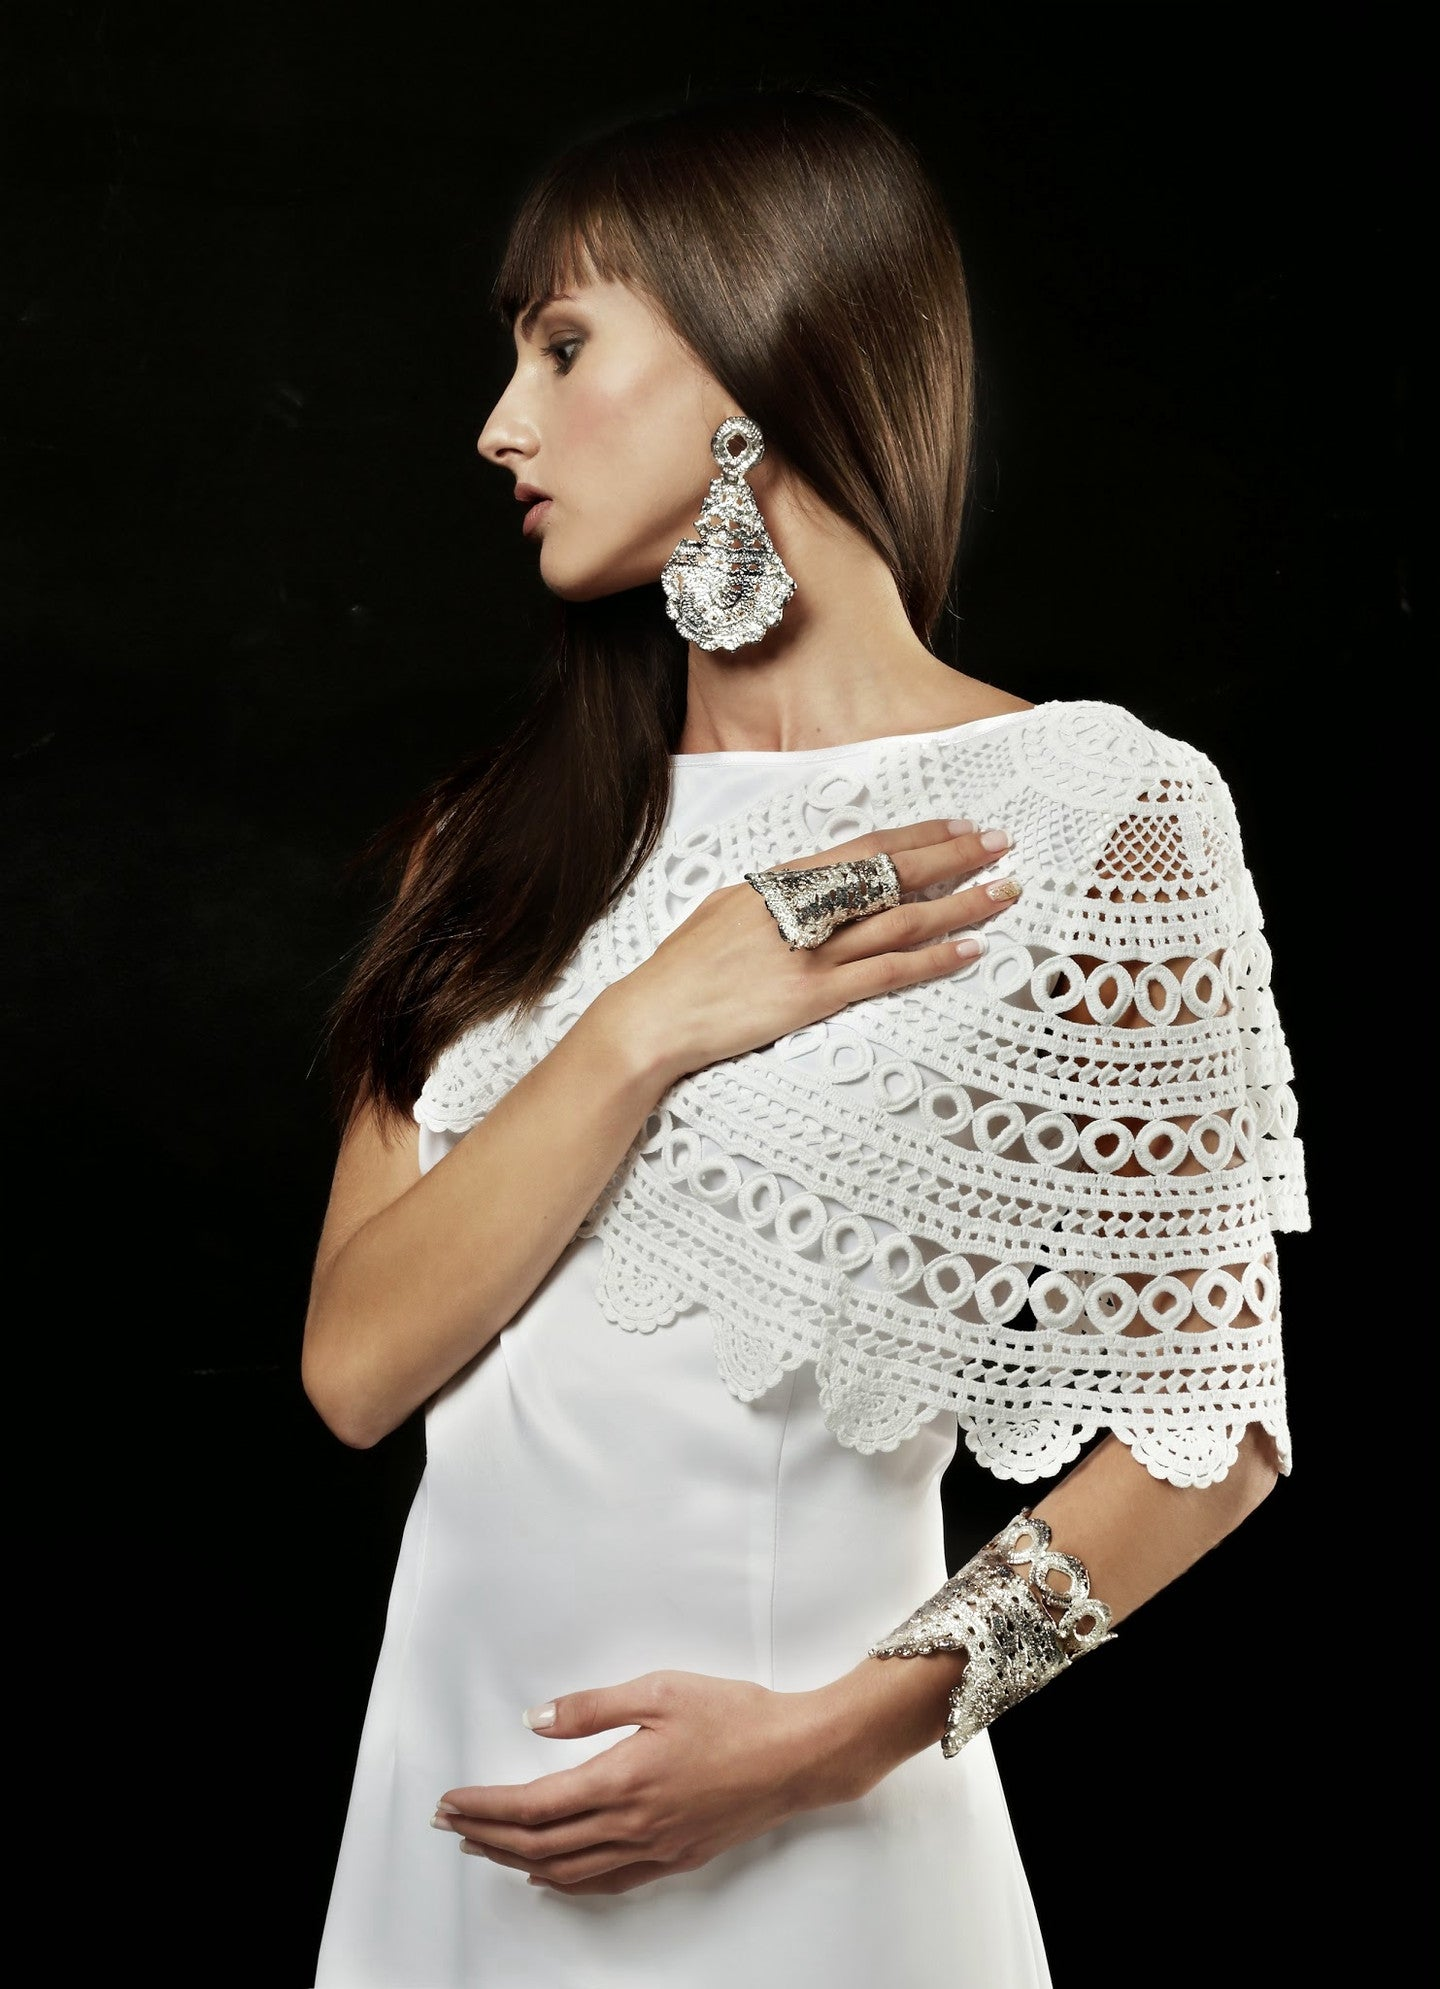 Morgana lace earrings and Timothea Lace cuff by Alexandra Koumba